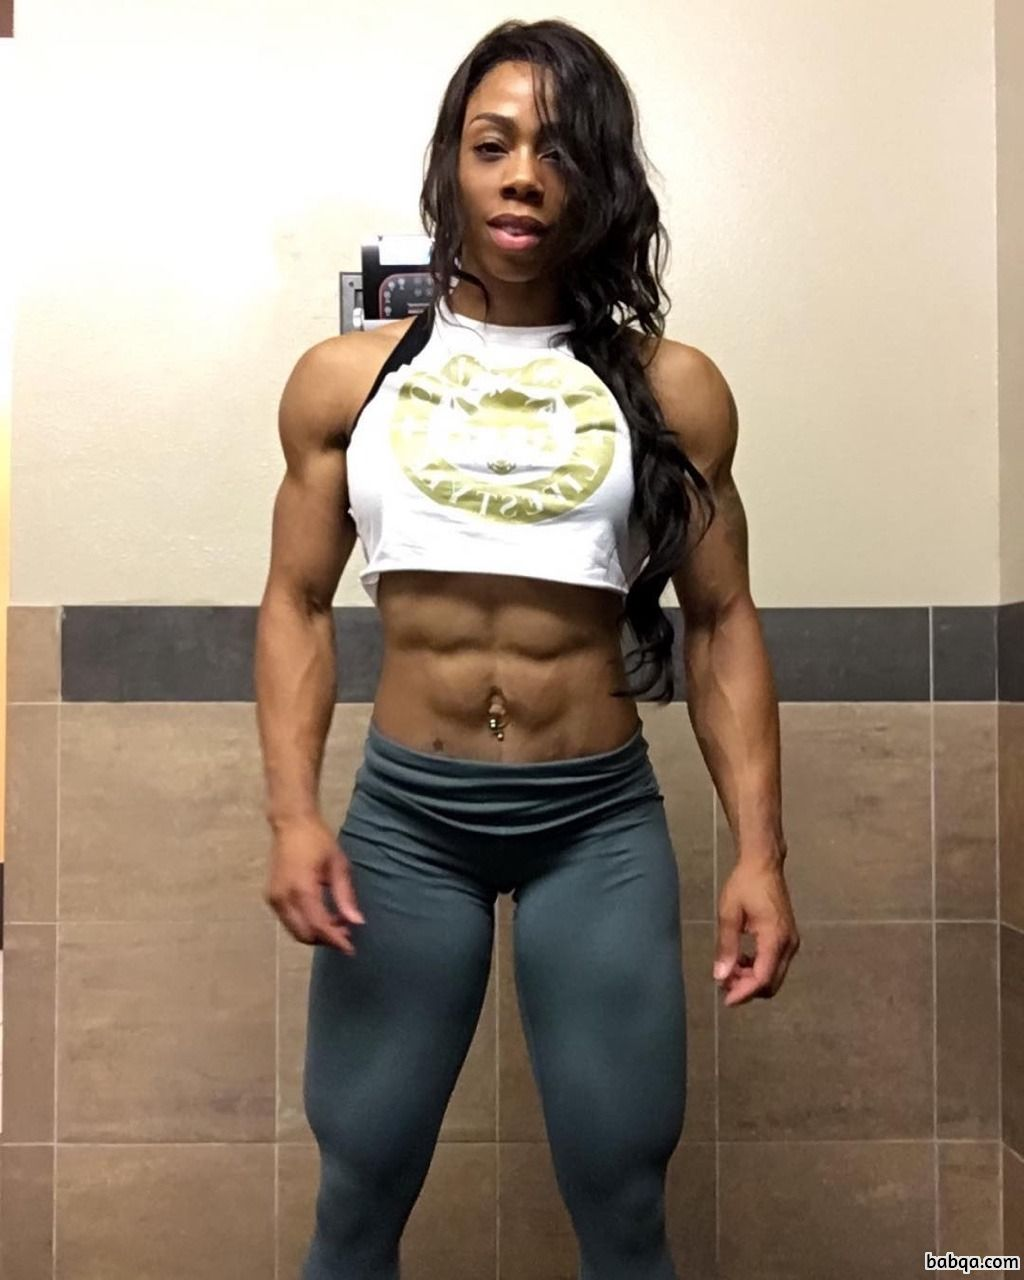 spicy female bodybuilder with muscular body and toned arms ...